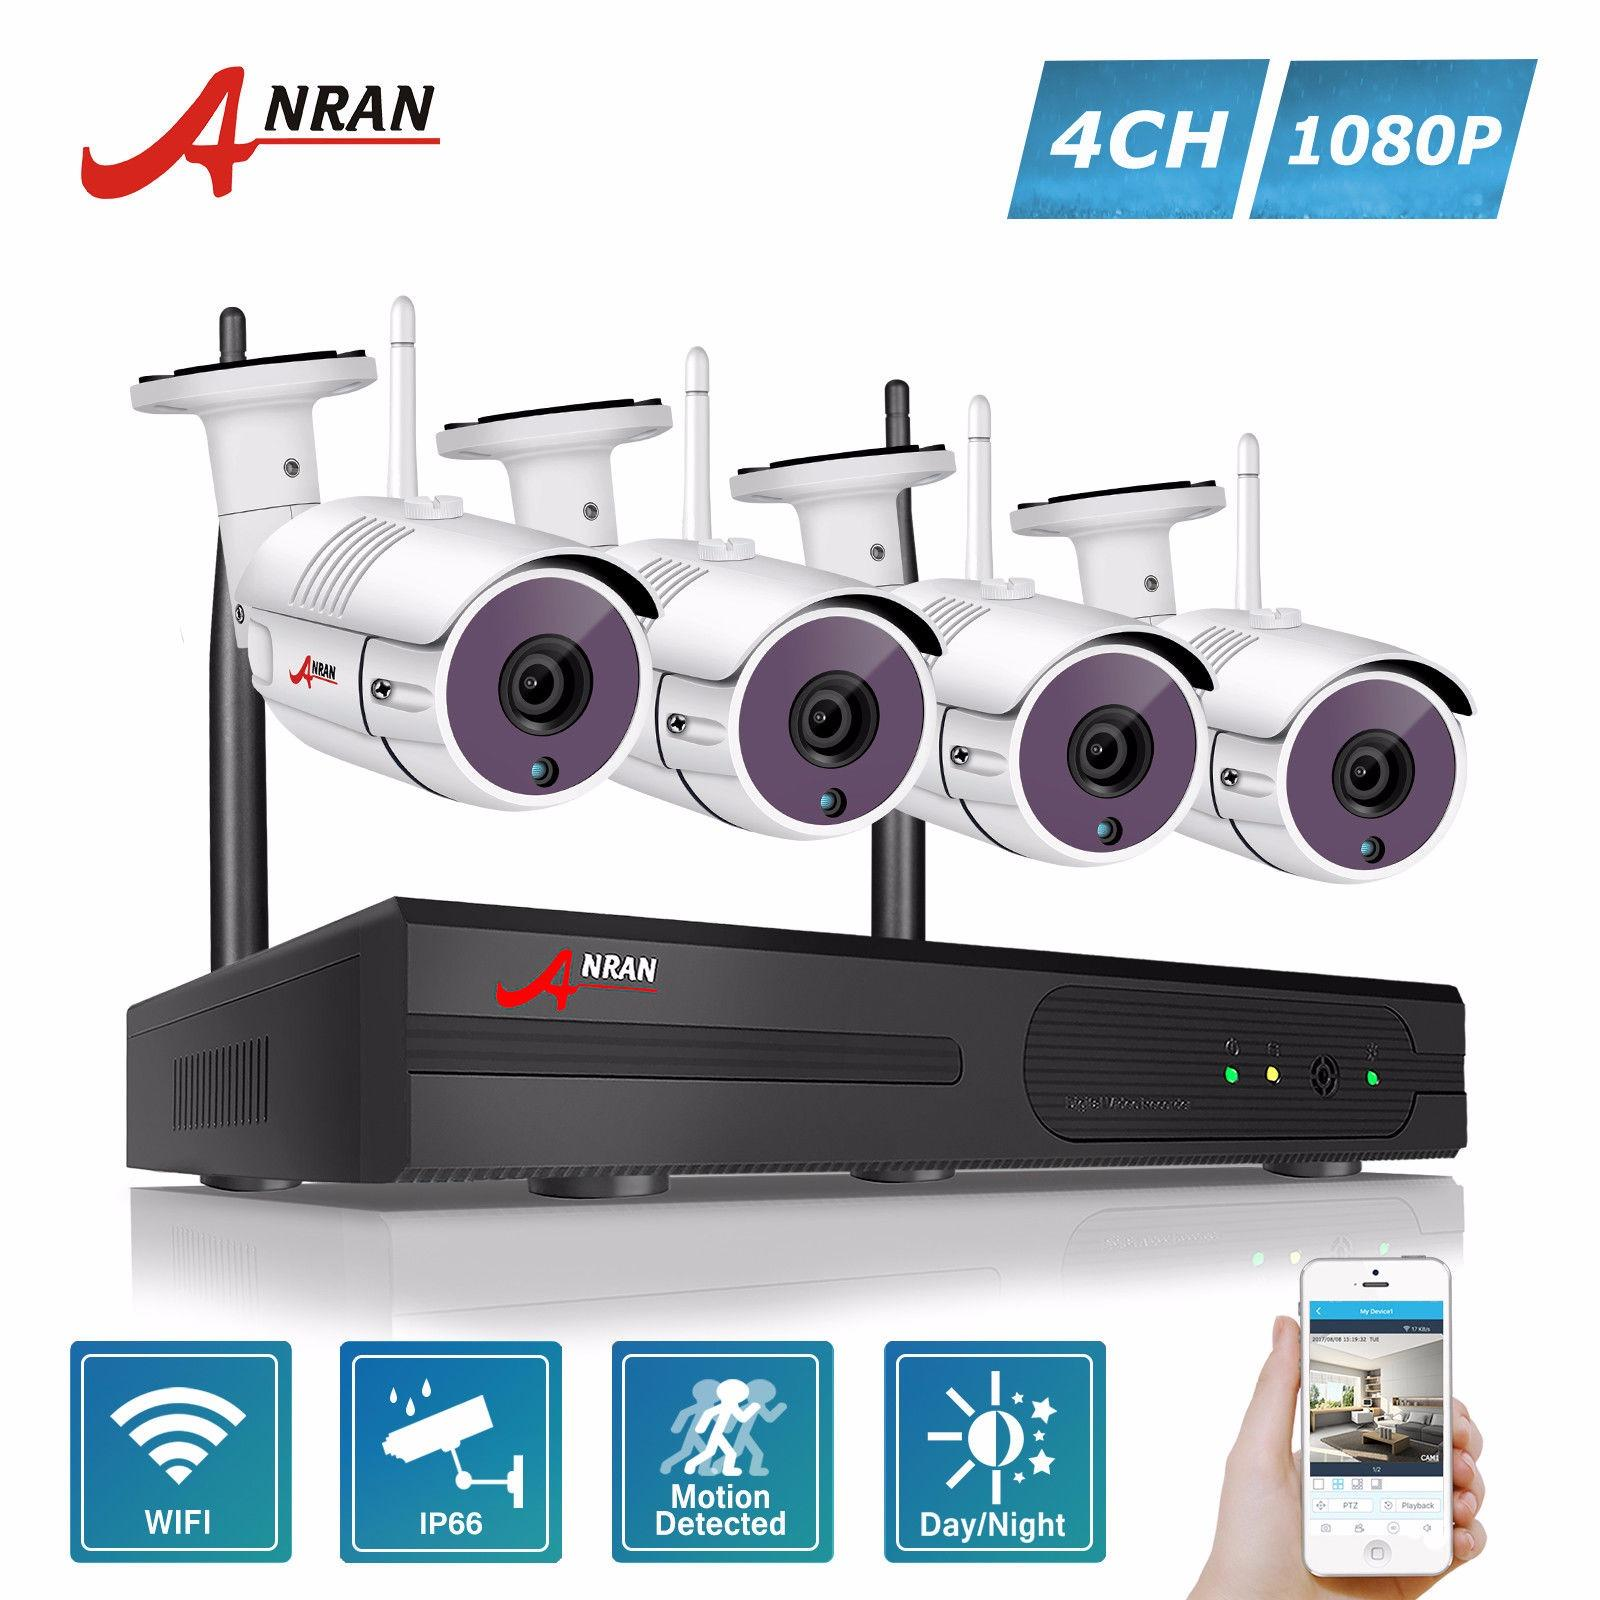 Beli Anran 4Ch Wireless Nvr Security Cctv System P2P 1080P Hd Outdoor Vandalproof Wfi Ip Camera Anran Asli